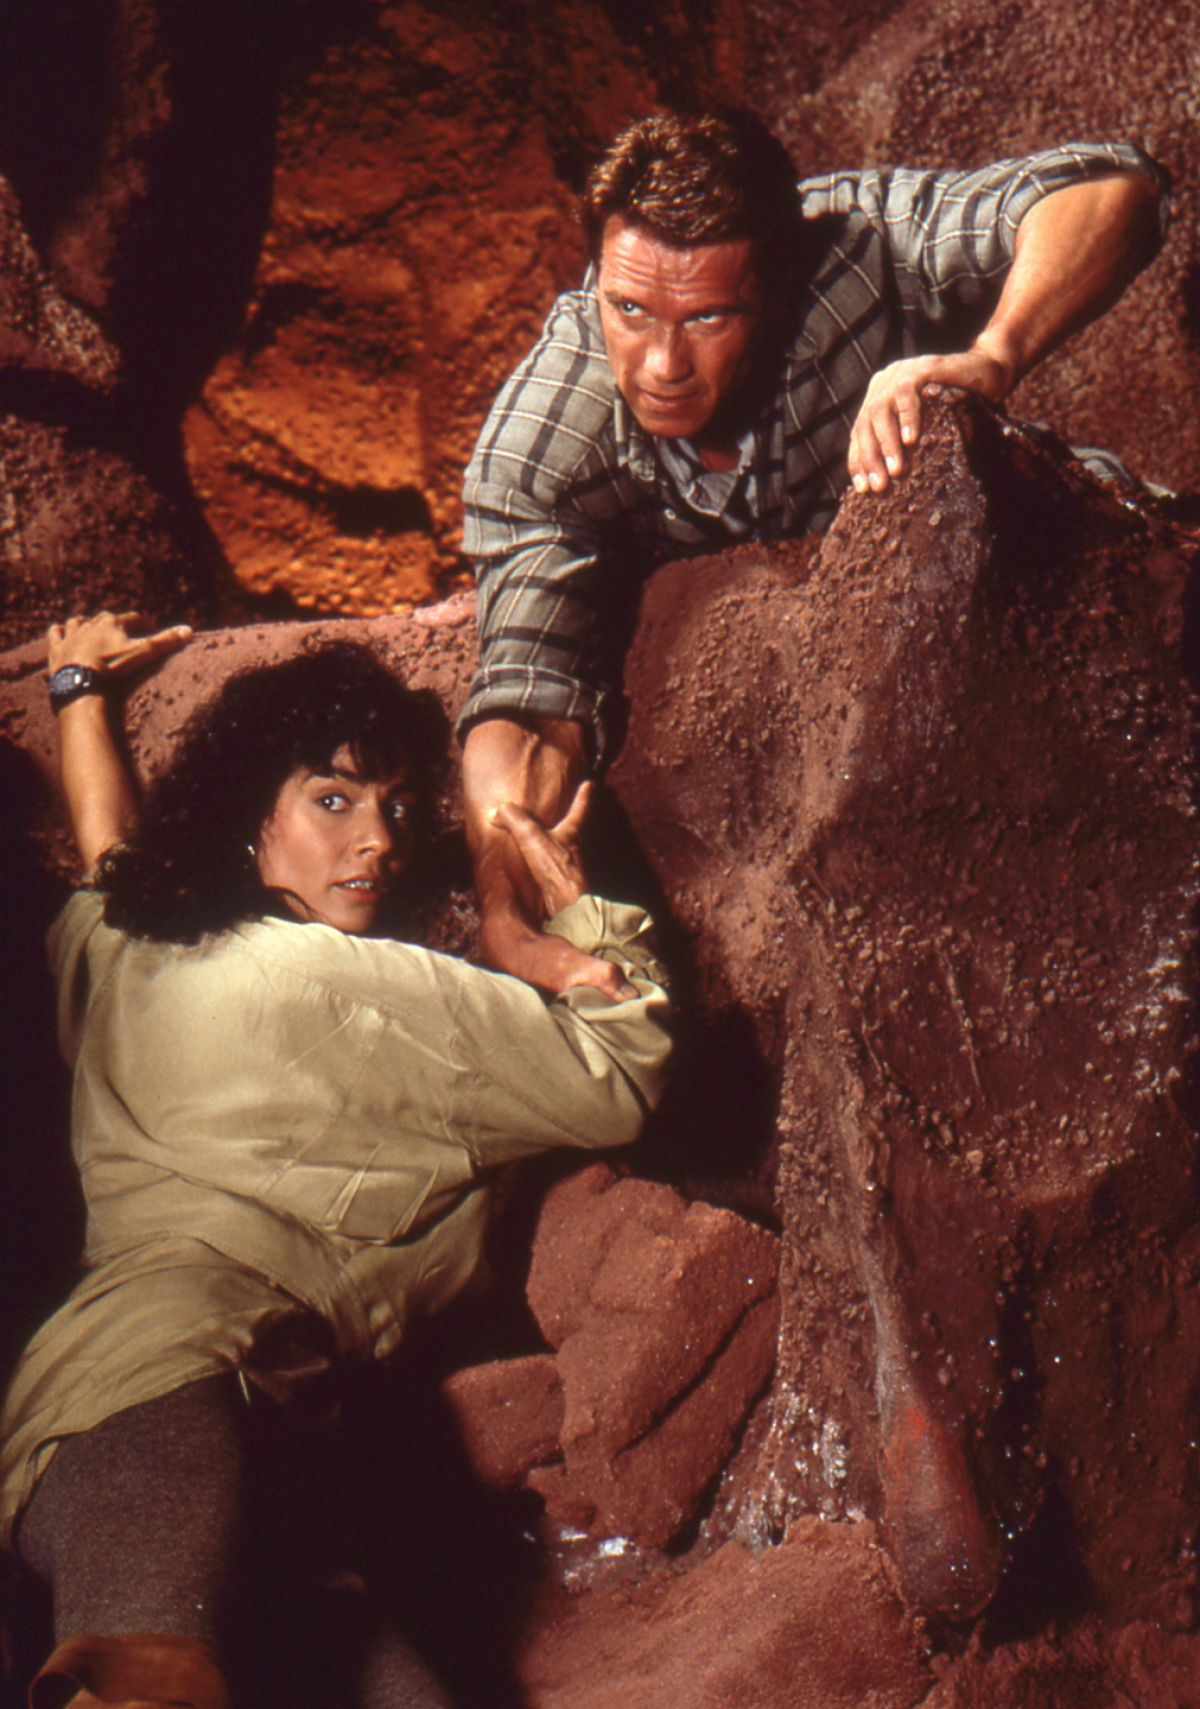 Quaid (Schwarzenegger) helps Melina (Rachel Ticotin) up the Martian landscape.